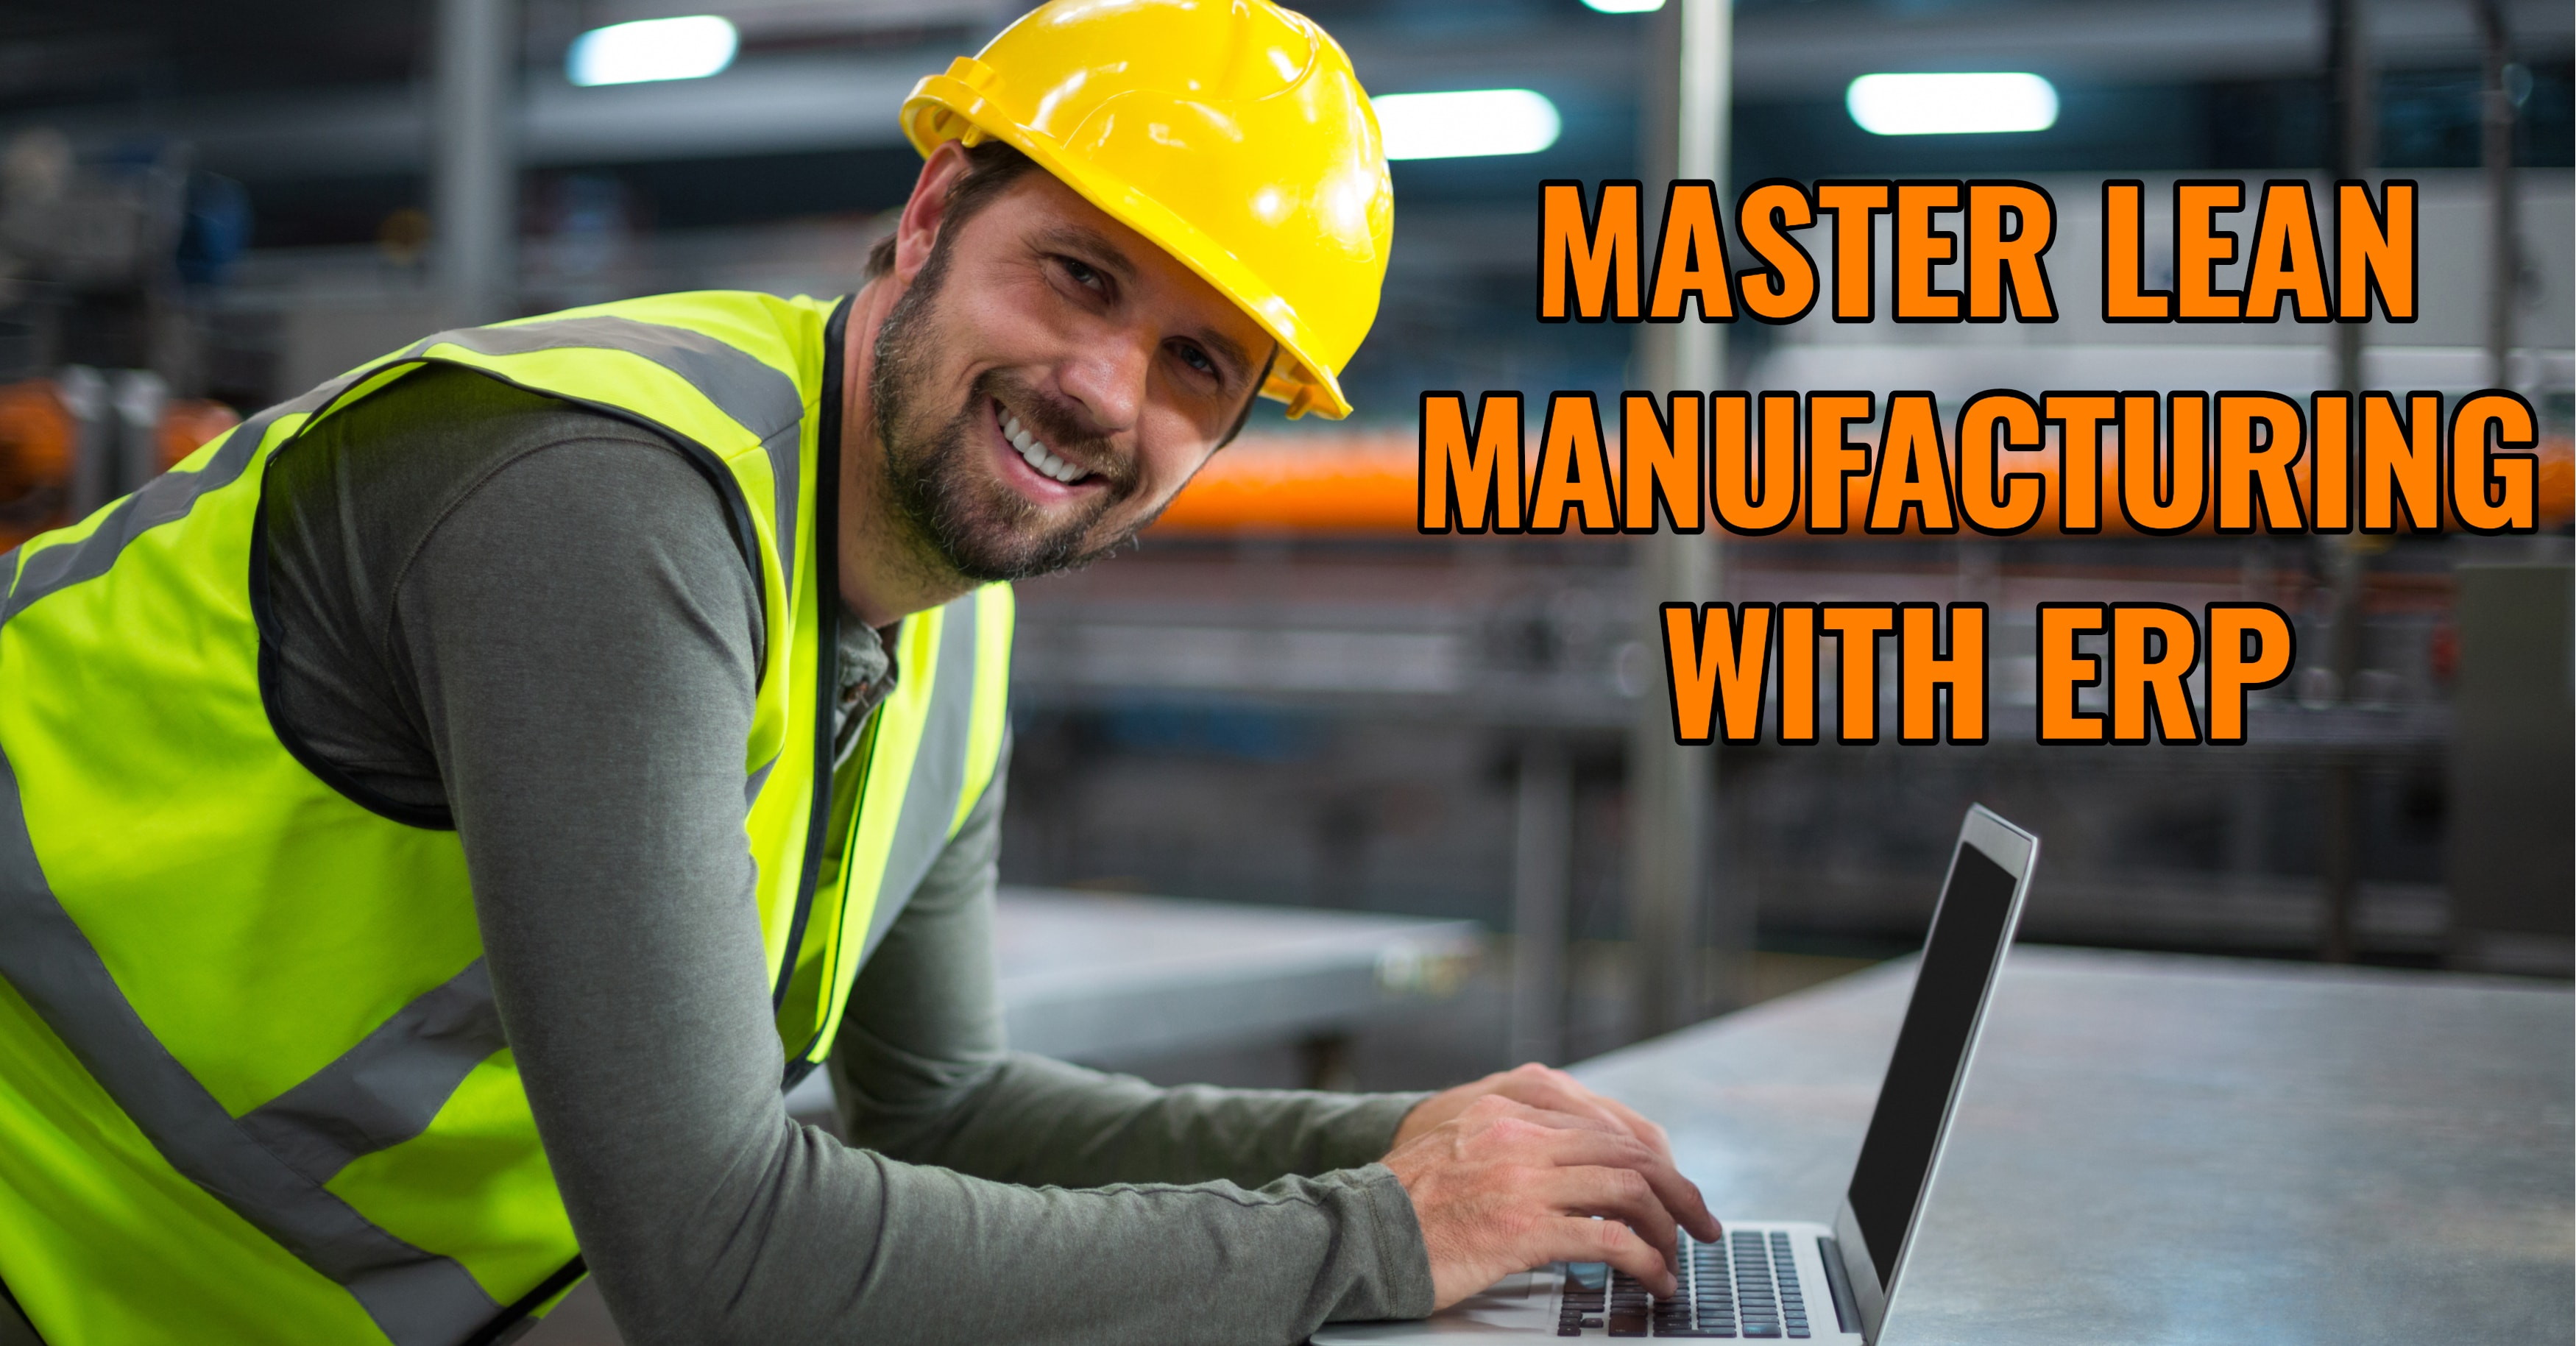 Master Lean Manufacturing With ERP